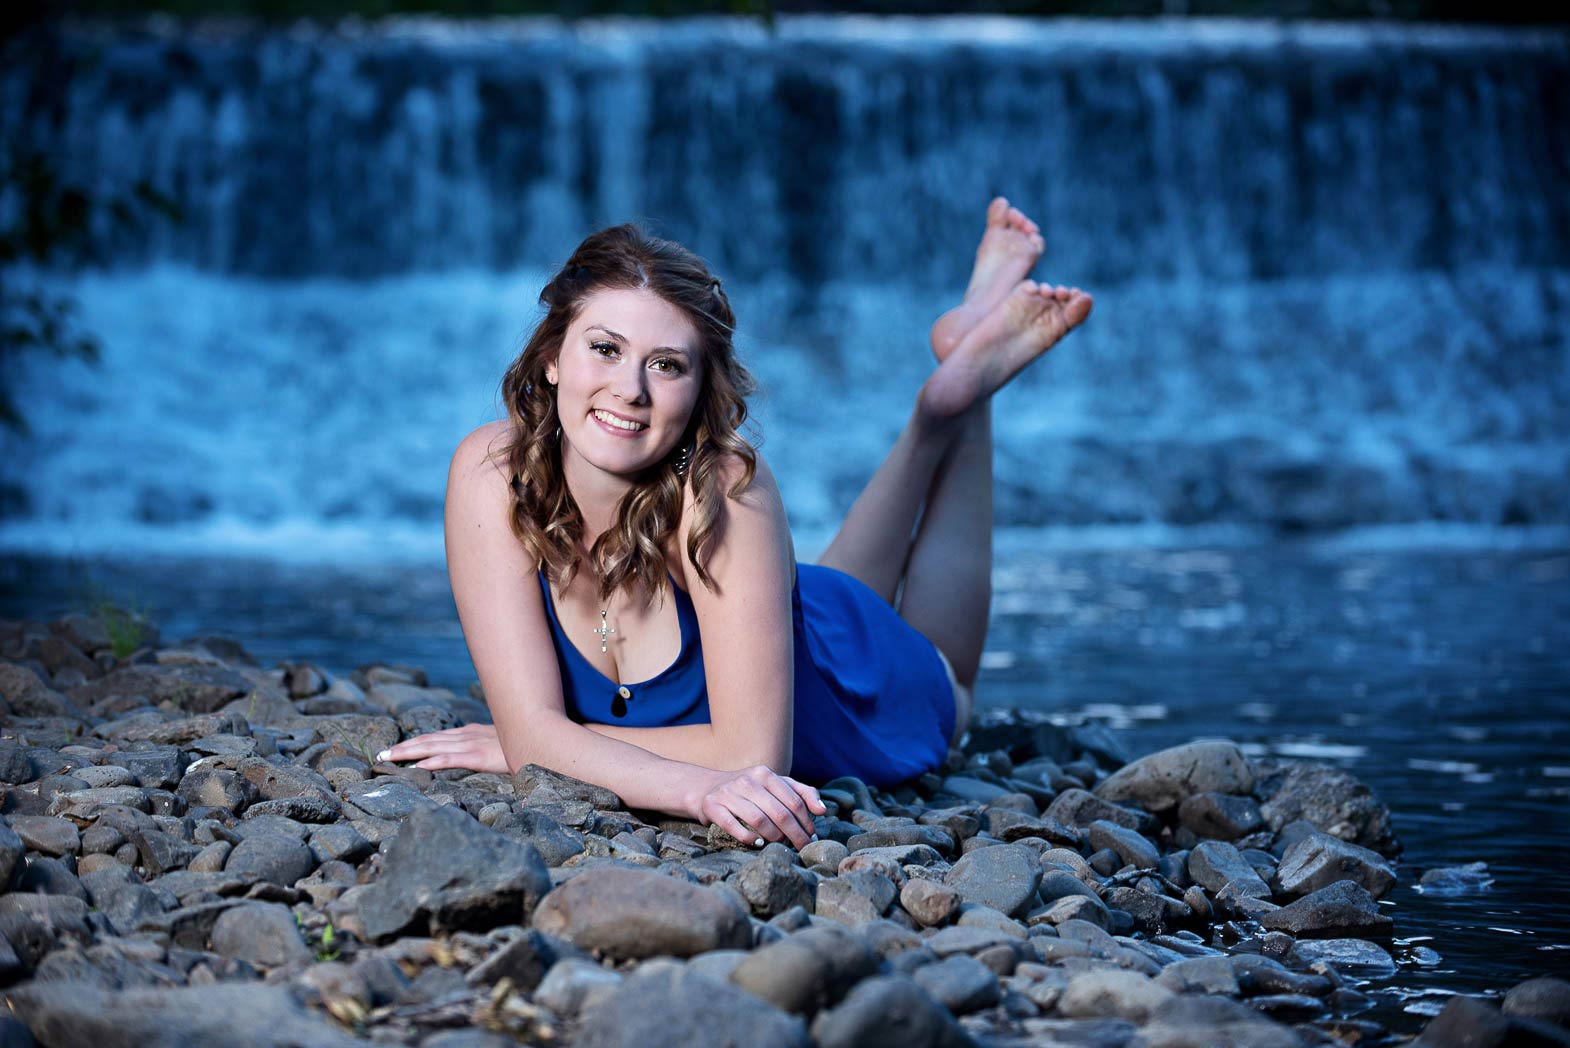 waterfall senior picture of girl laying by river with waterfall in background